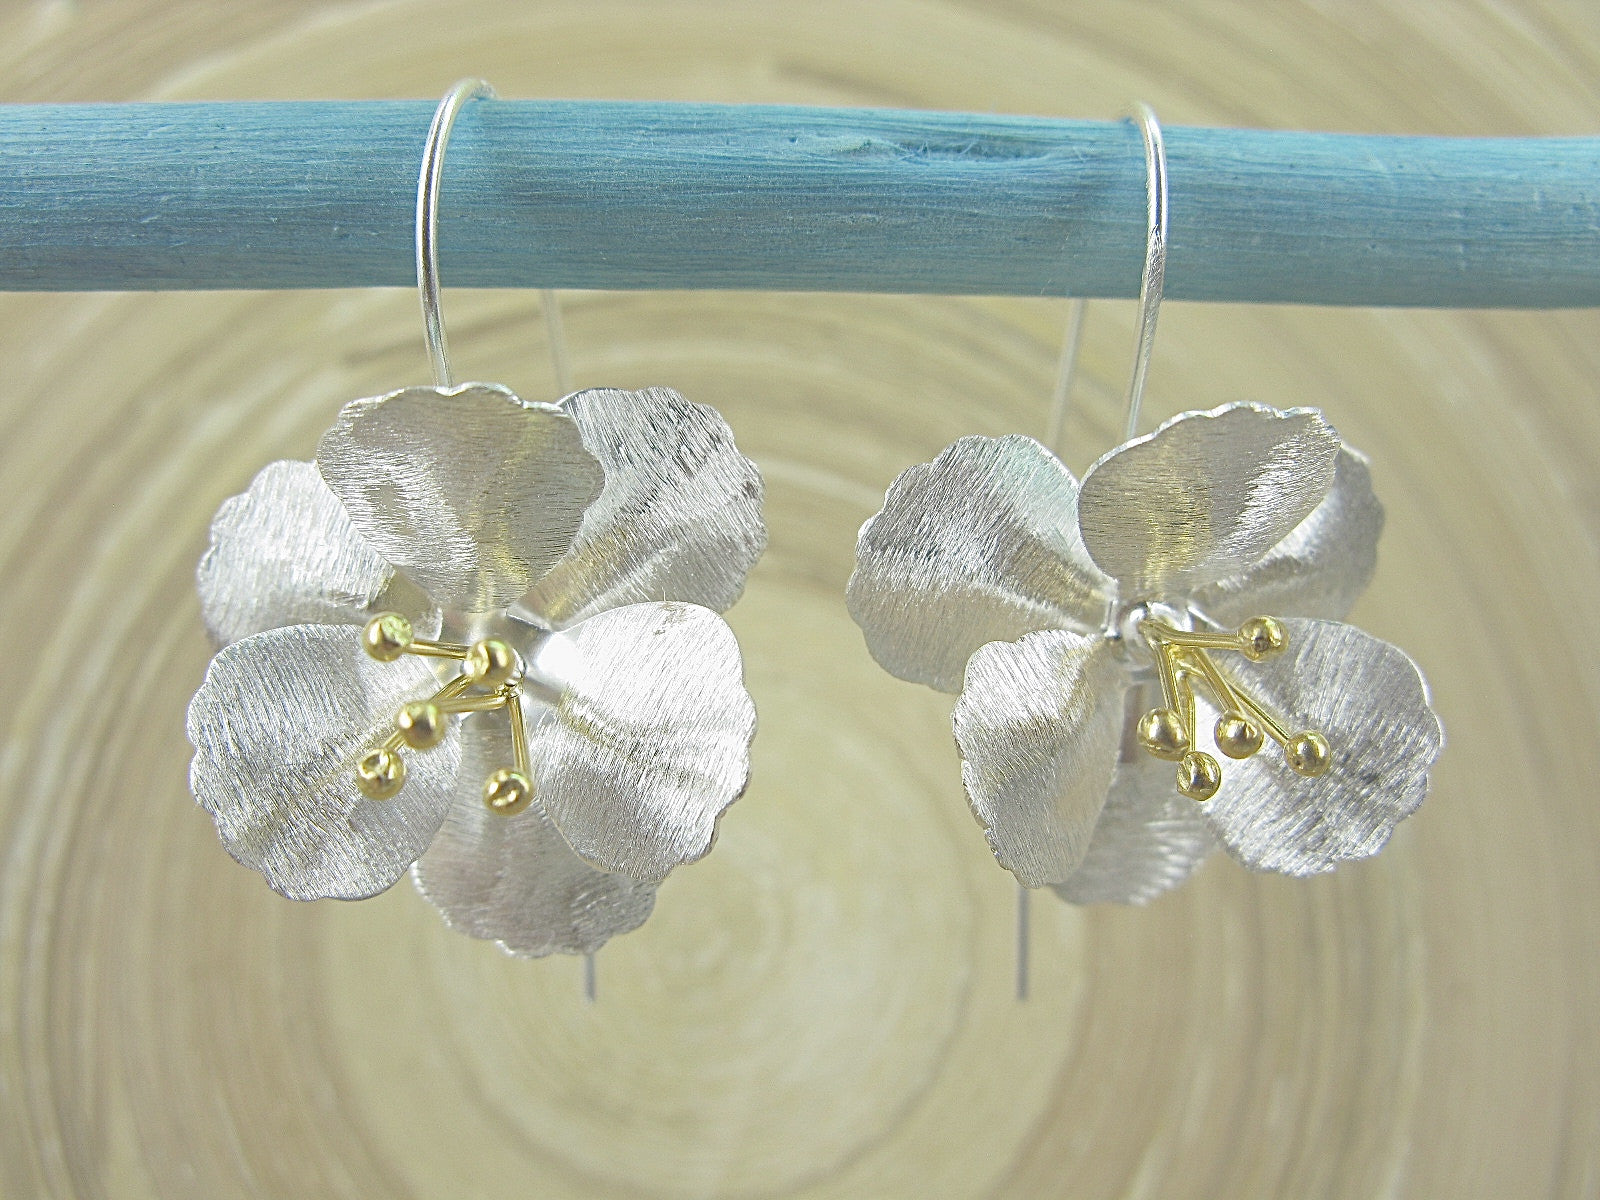 Flower Tribal Matt Look Gold Plated 925 Sterling Silver Earrings Earrings - Faith Owl